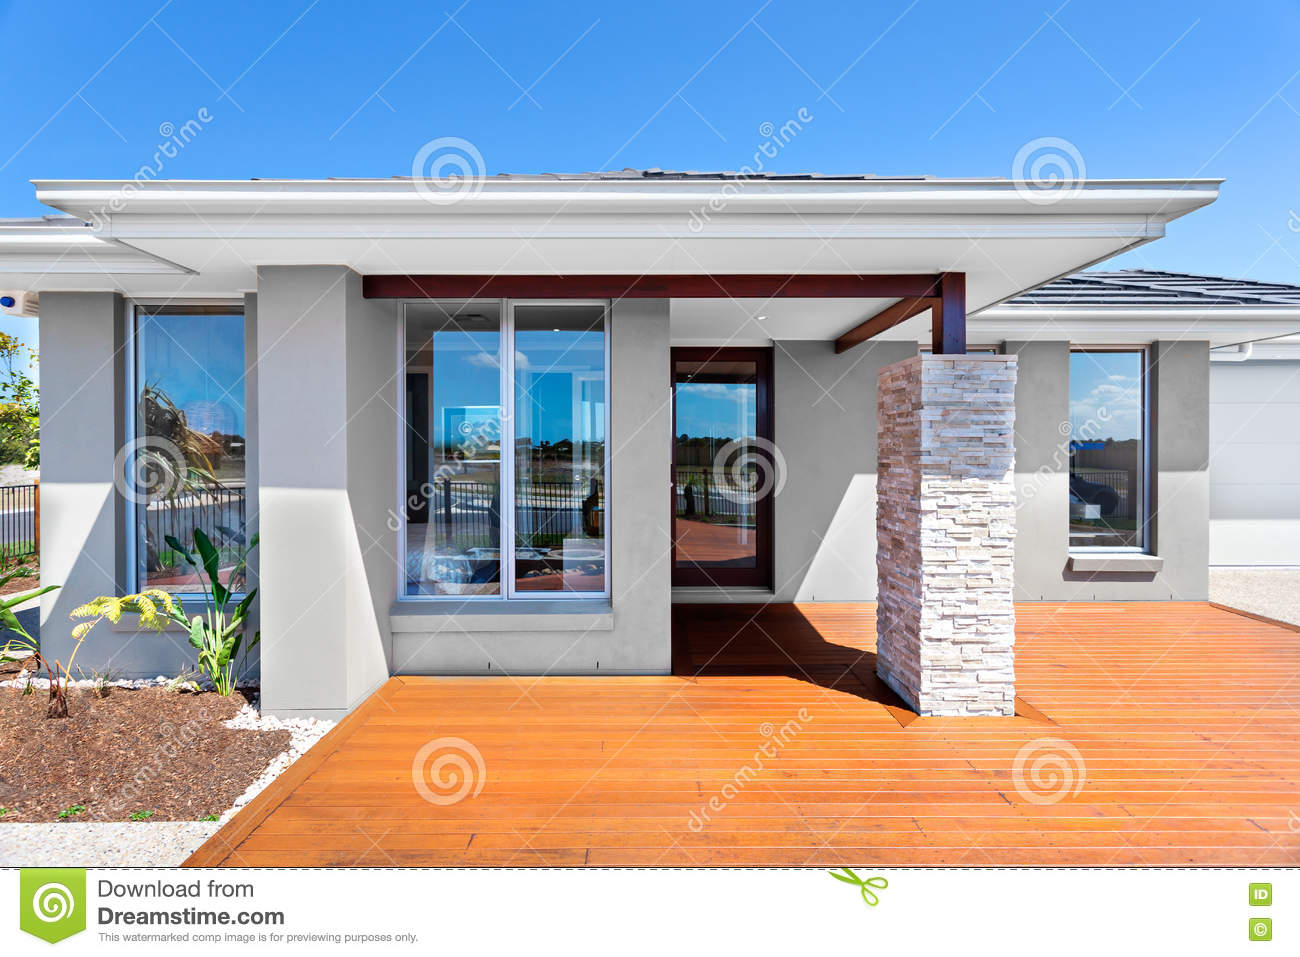 Exterior of a modern house with a wooden floor with blue sky